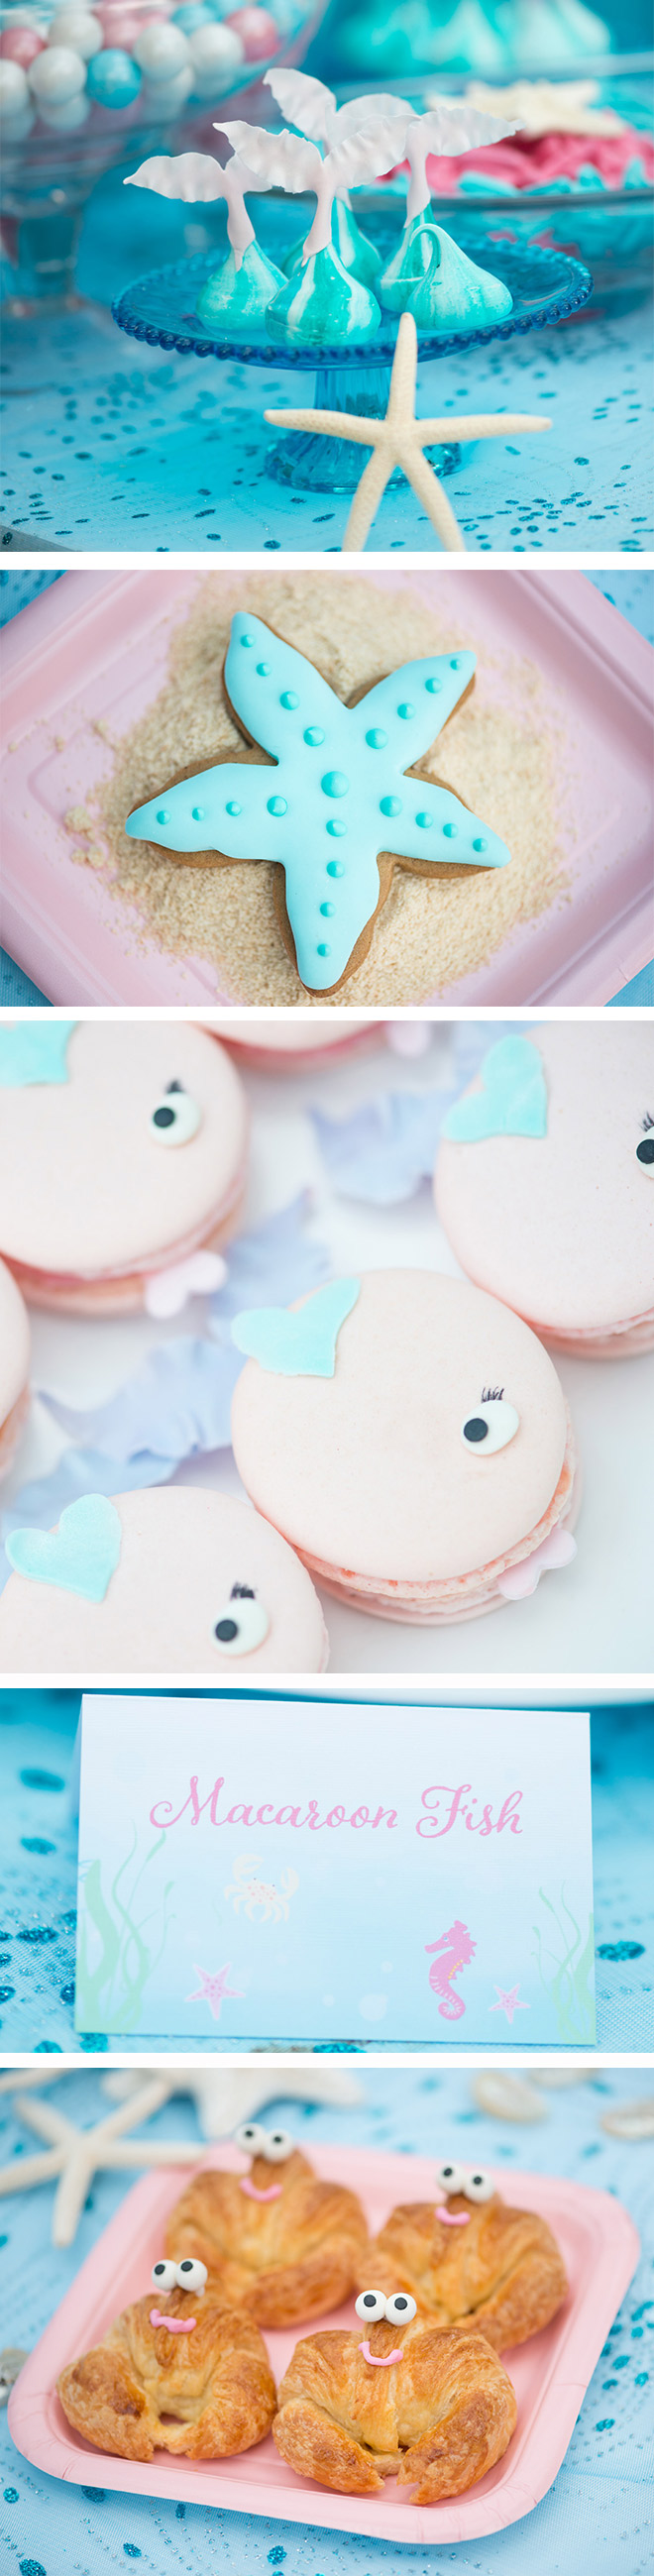 Mermaid Party Food Ideas: Meringue Tails, Macaroon Fish & Crab Croissants! Yum!!